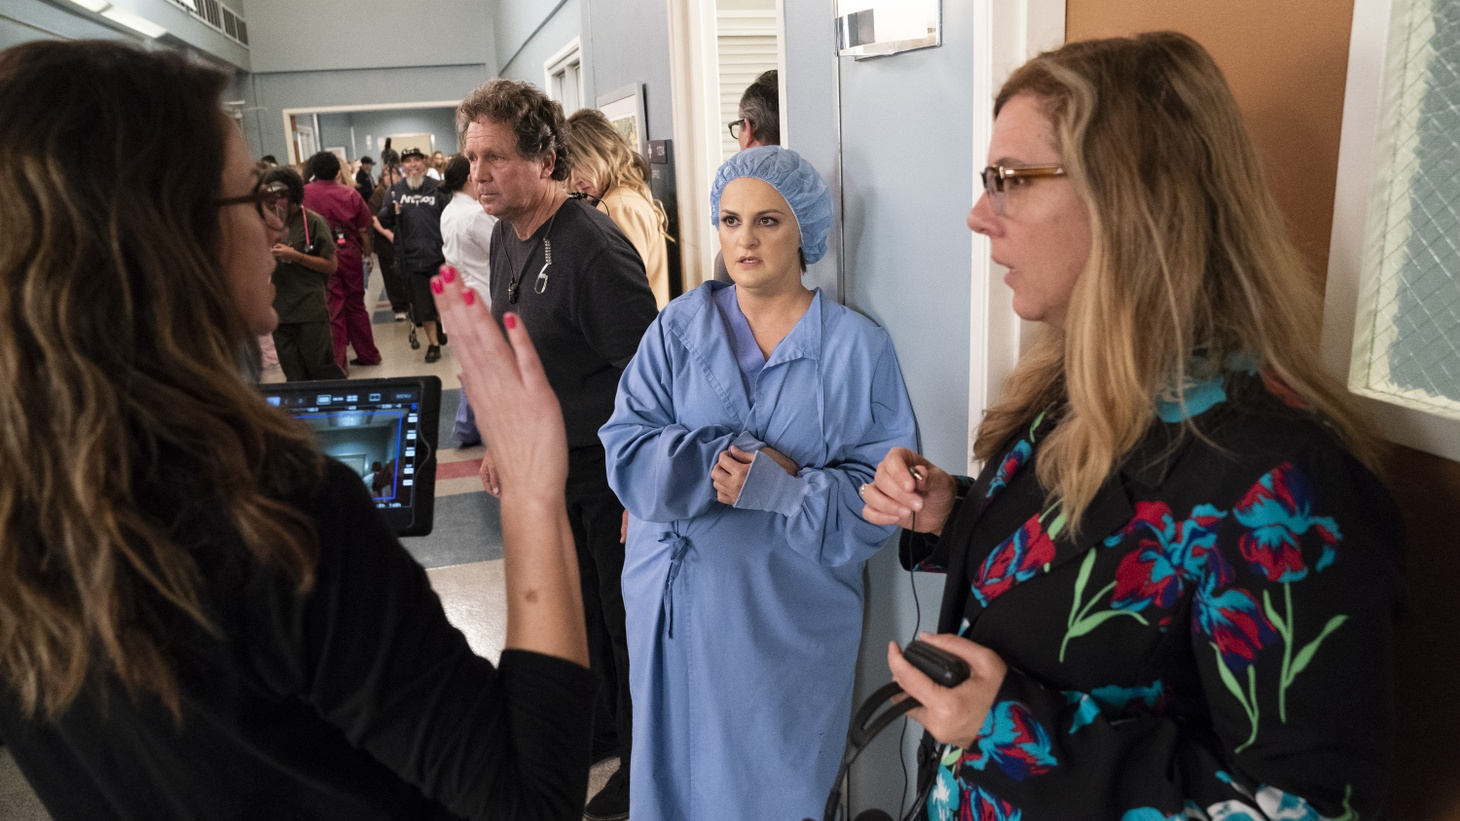 Grey's Anatomy writer Elisabeth Finch and showrunner Krista Vernoff, on the set of 'Silent All These Years.'